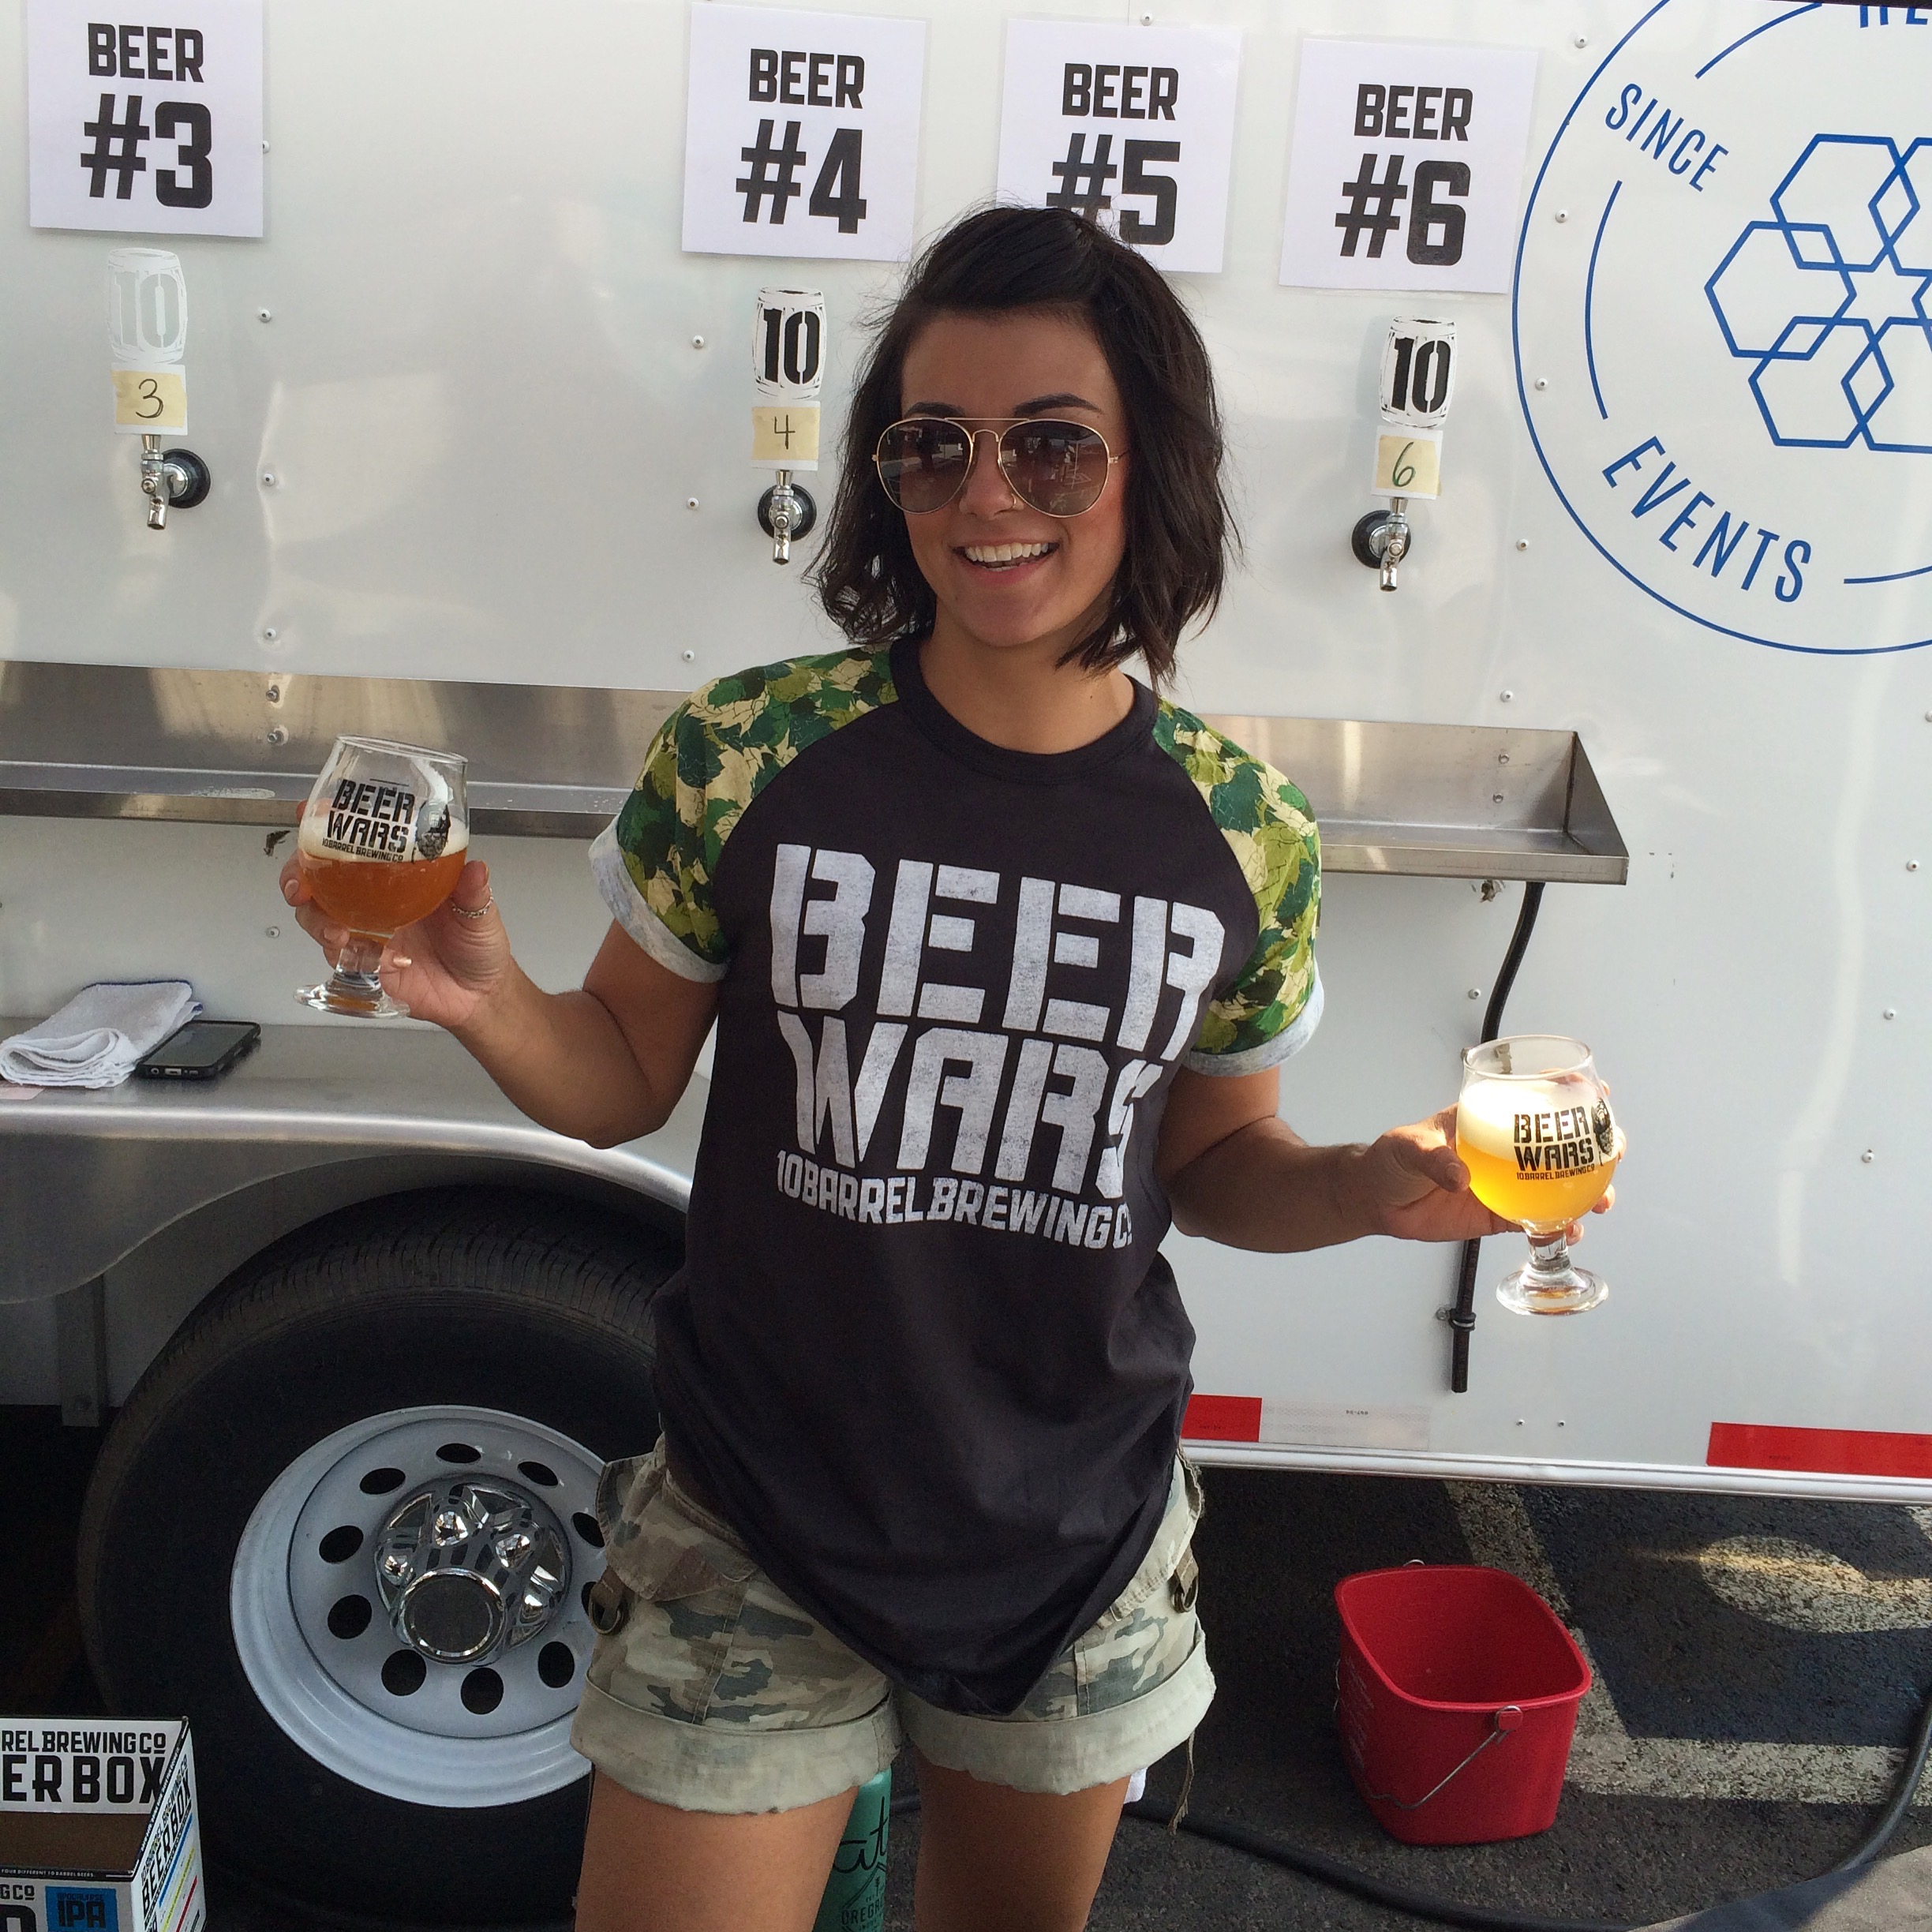 Beer Wars from 10 Barrel Brewing returned to Bend. (photo by Amanda Skourtis)